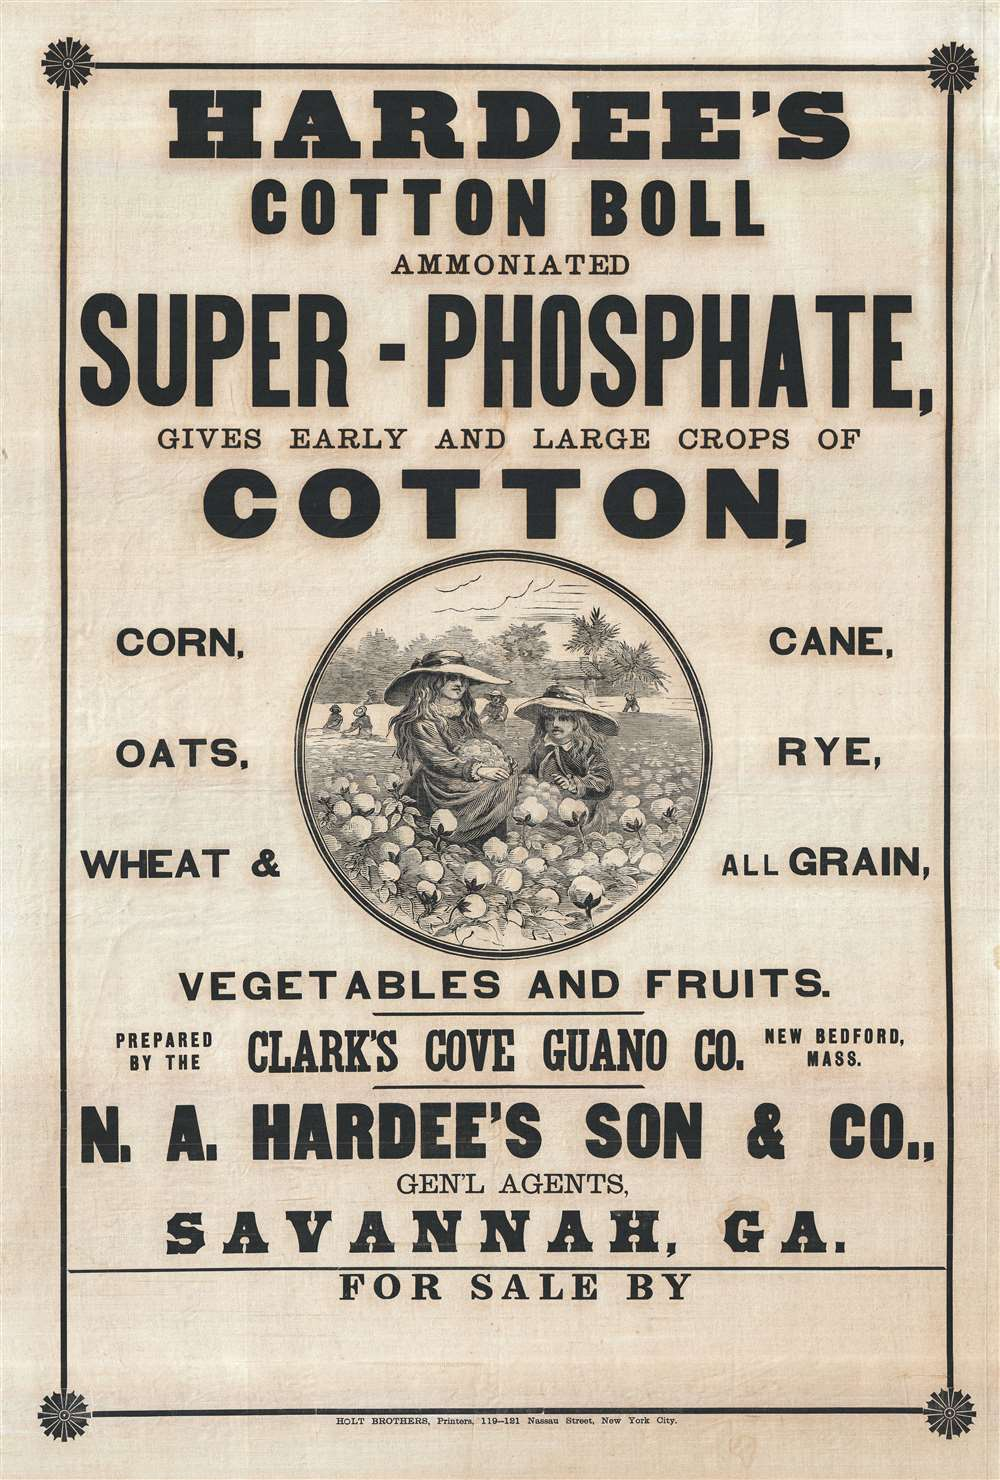 Hardee's Cotton Boll Ammoniated Super-Phosphate, gives early and large crops of Cotton…